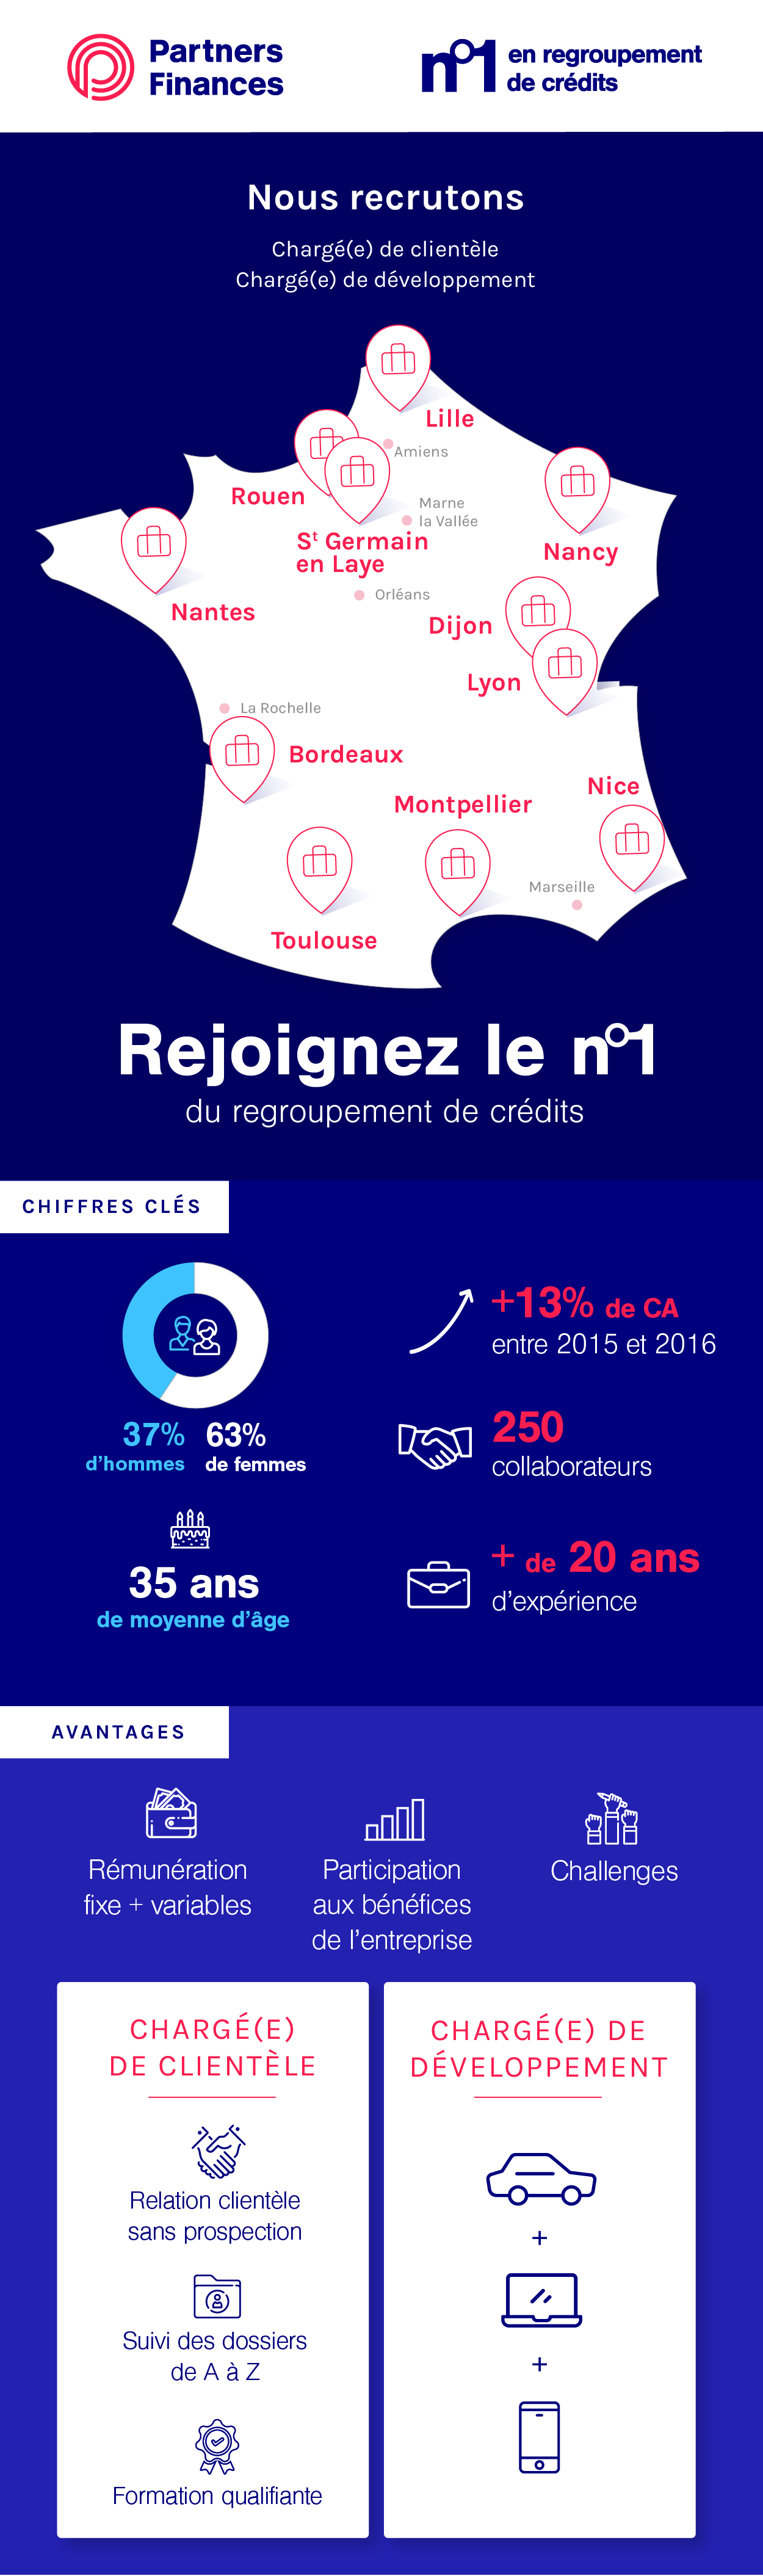 Infographie recrutement PF